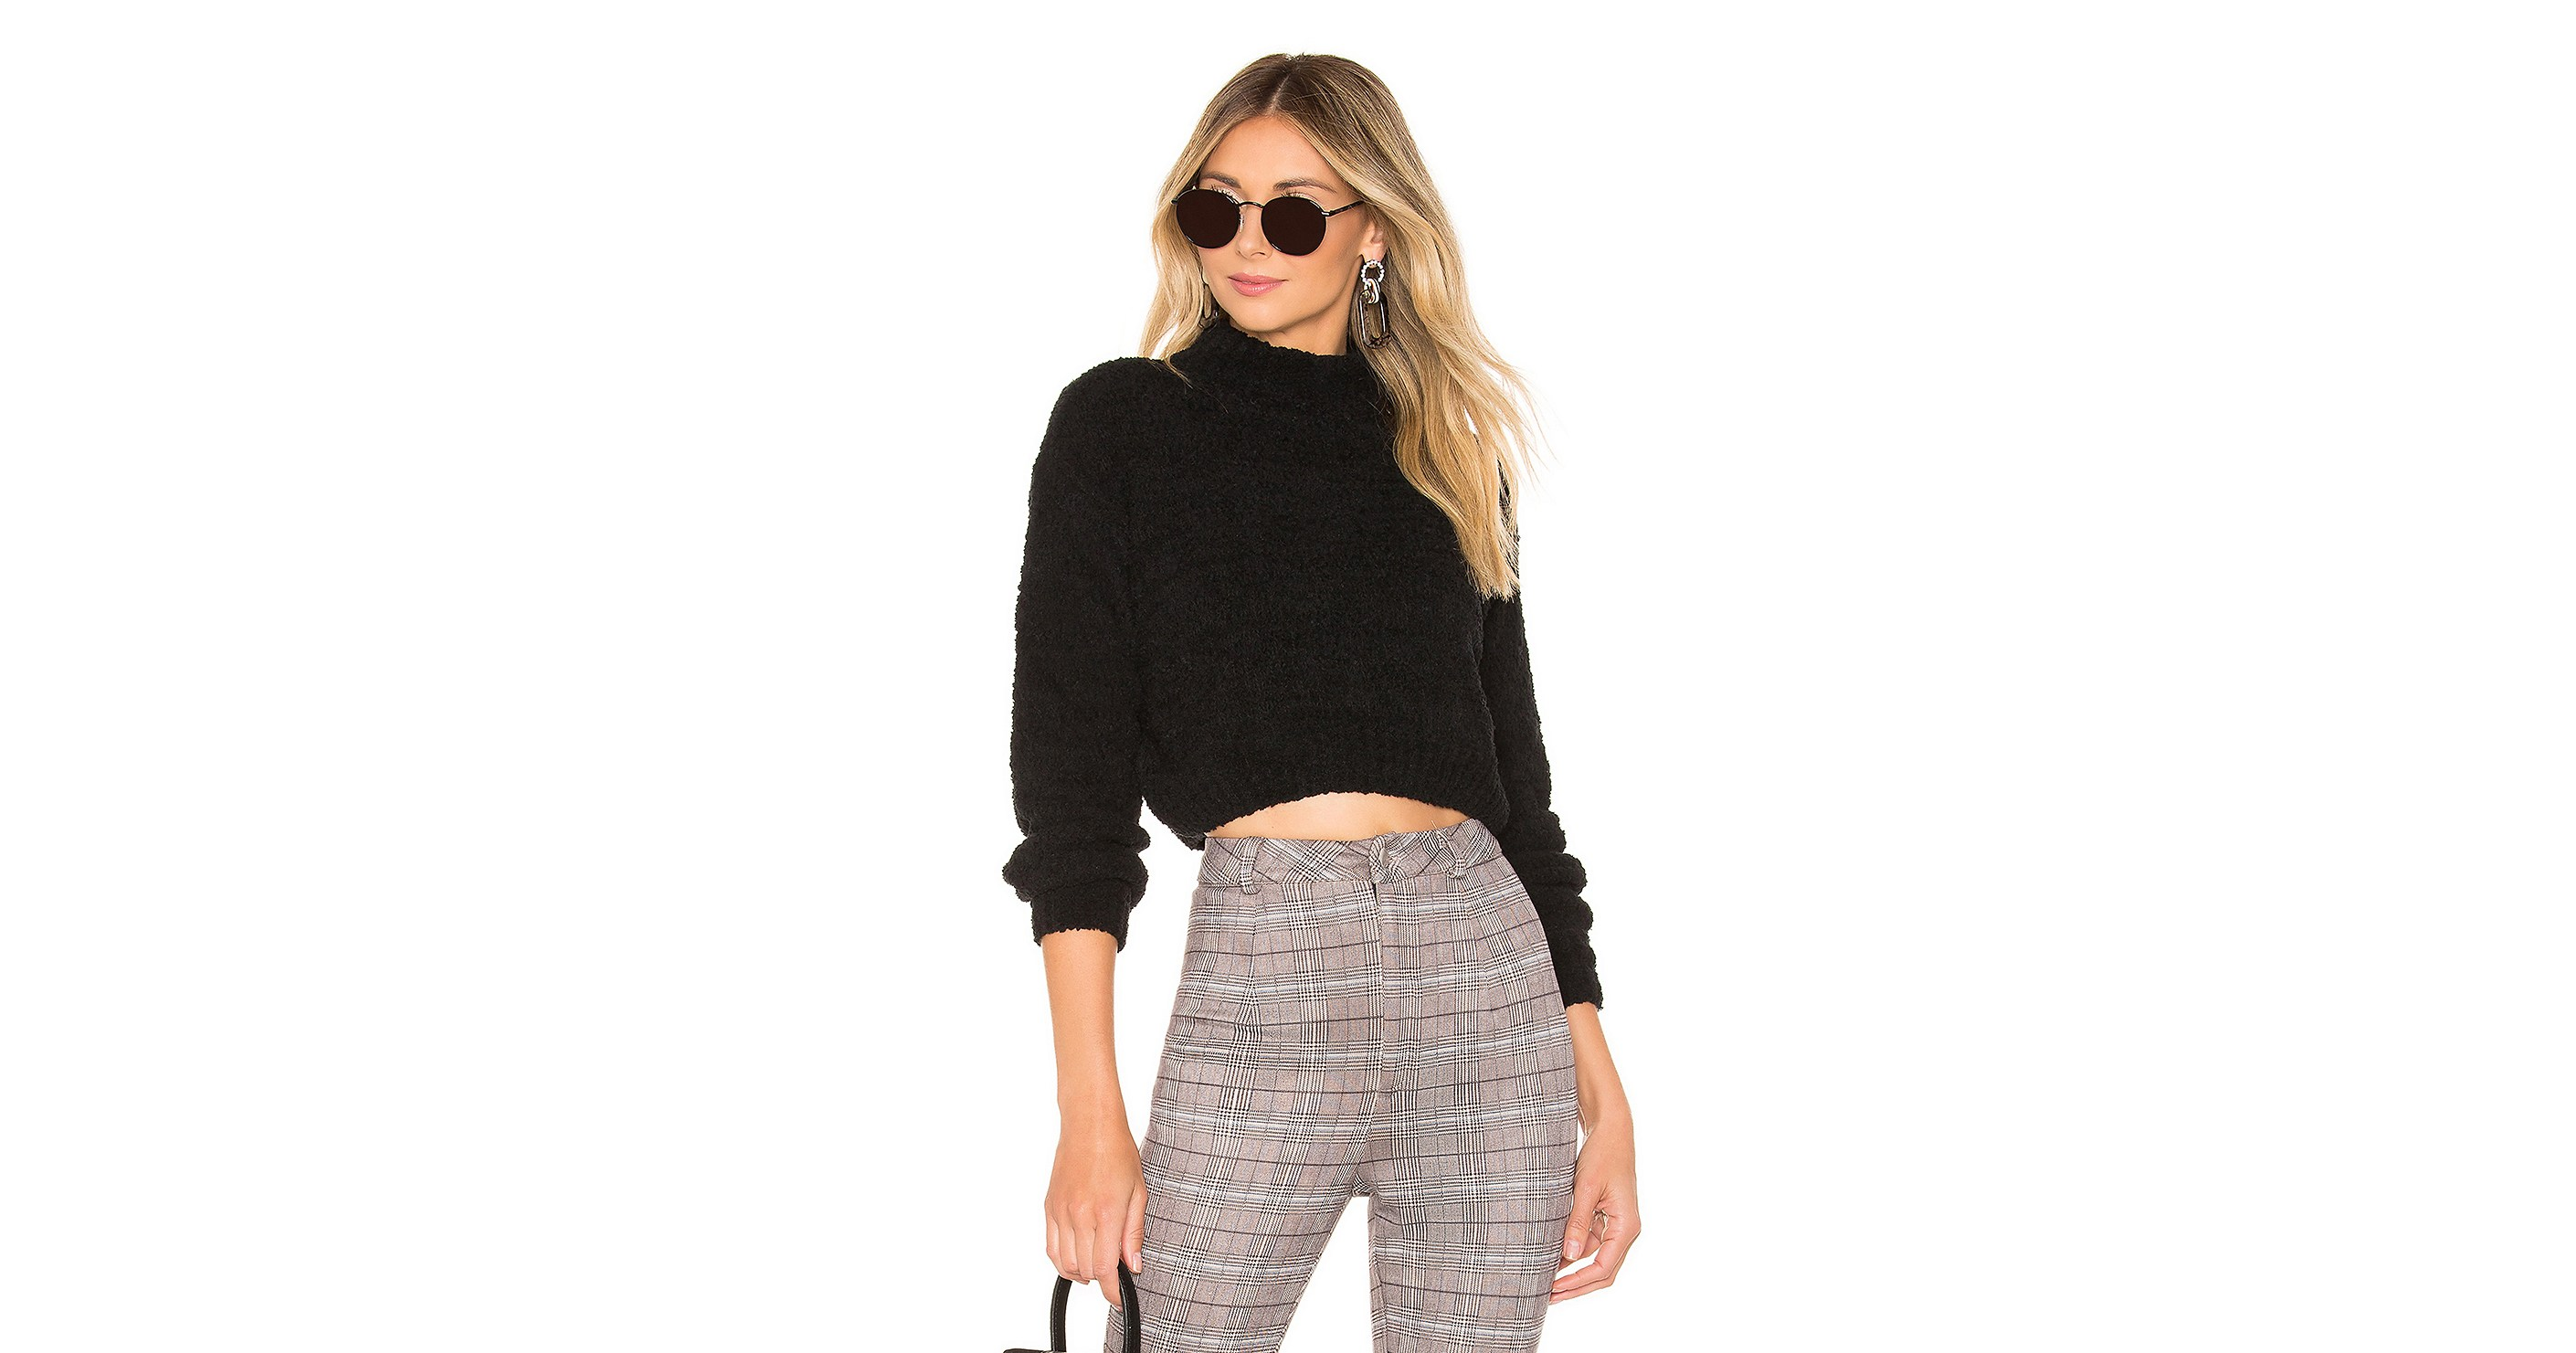 This Cropped Chenille Sweater Is So Soft and Even More Stylish